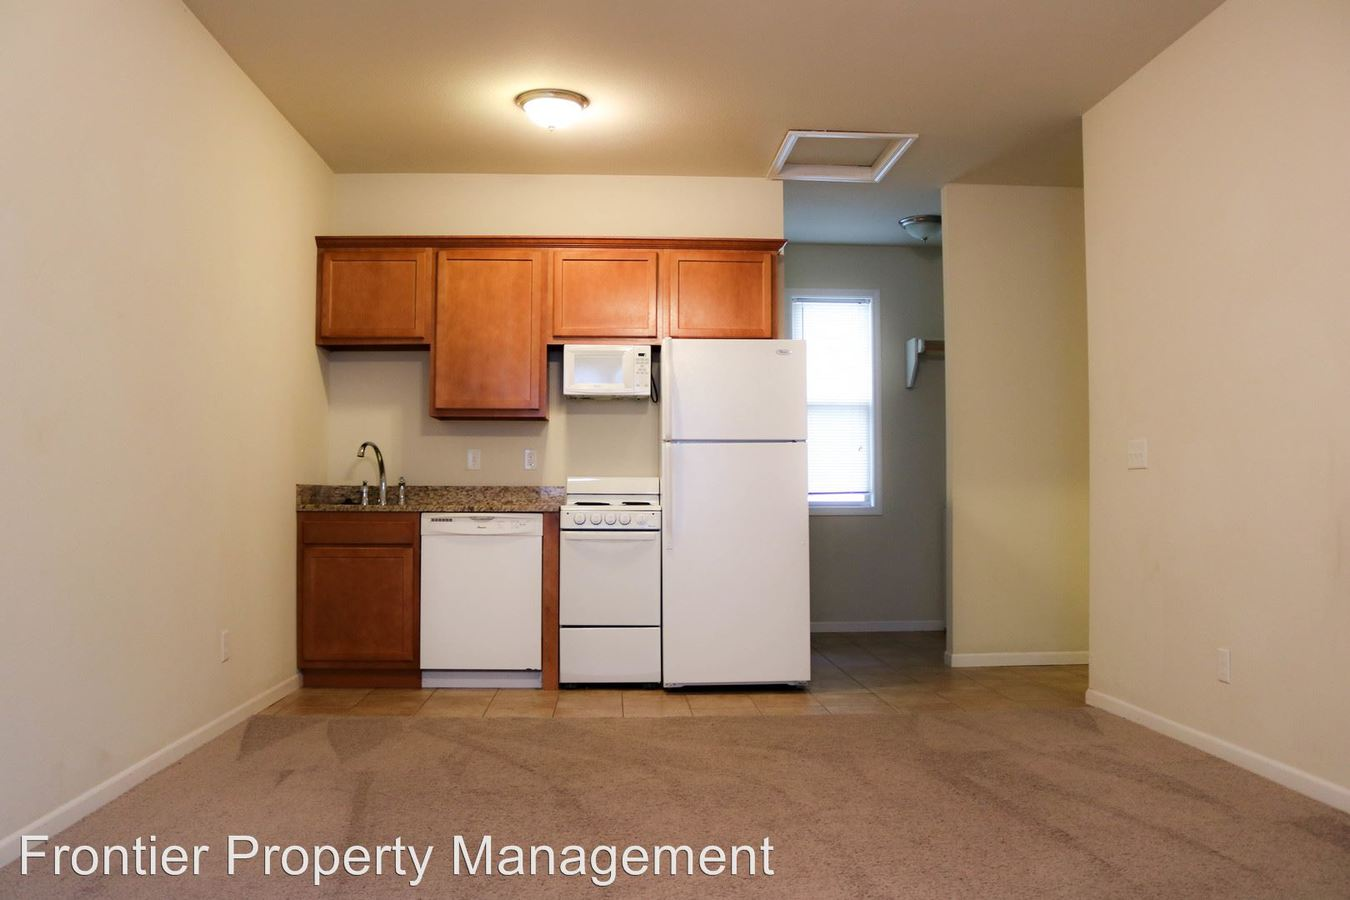 2 Bedrooms 2 Bathrooms Apartment for rent at 1117 N 11th St in Manhattan, KS